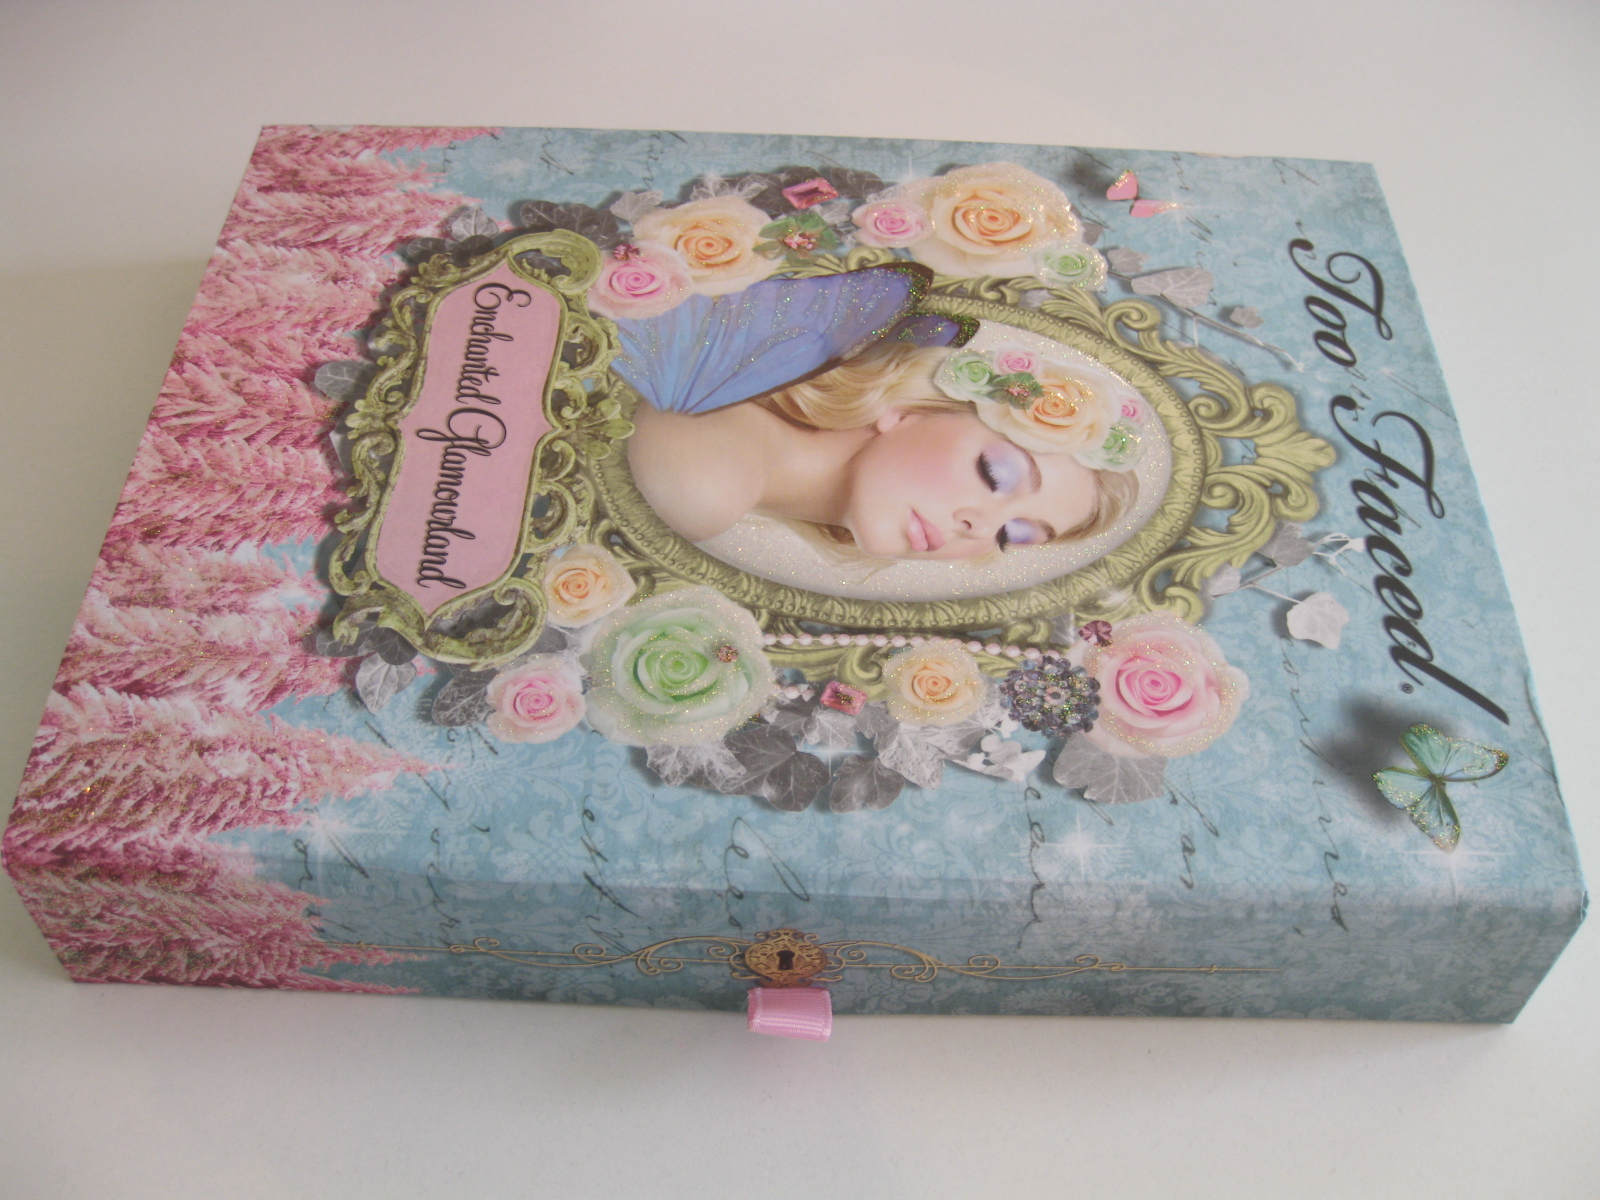 Pleasureflush: Too Faced Enchanted Glamourland review and